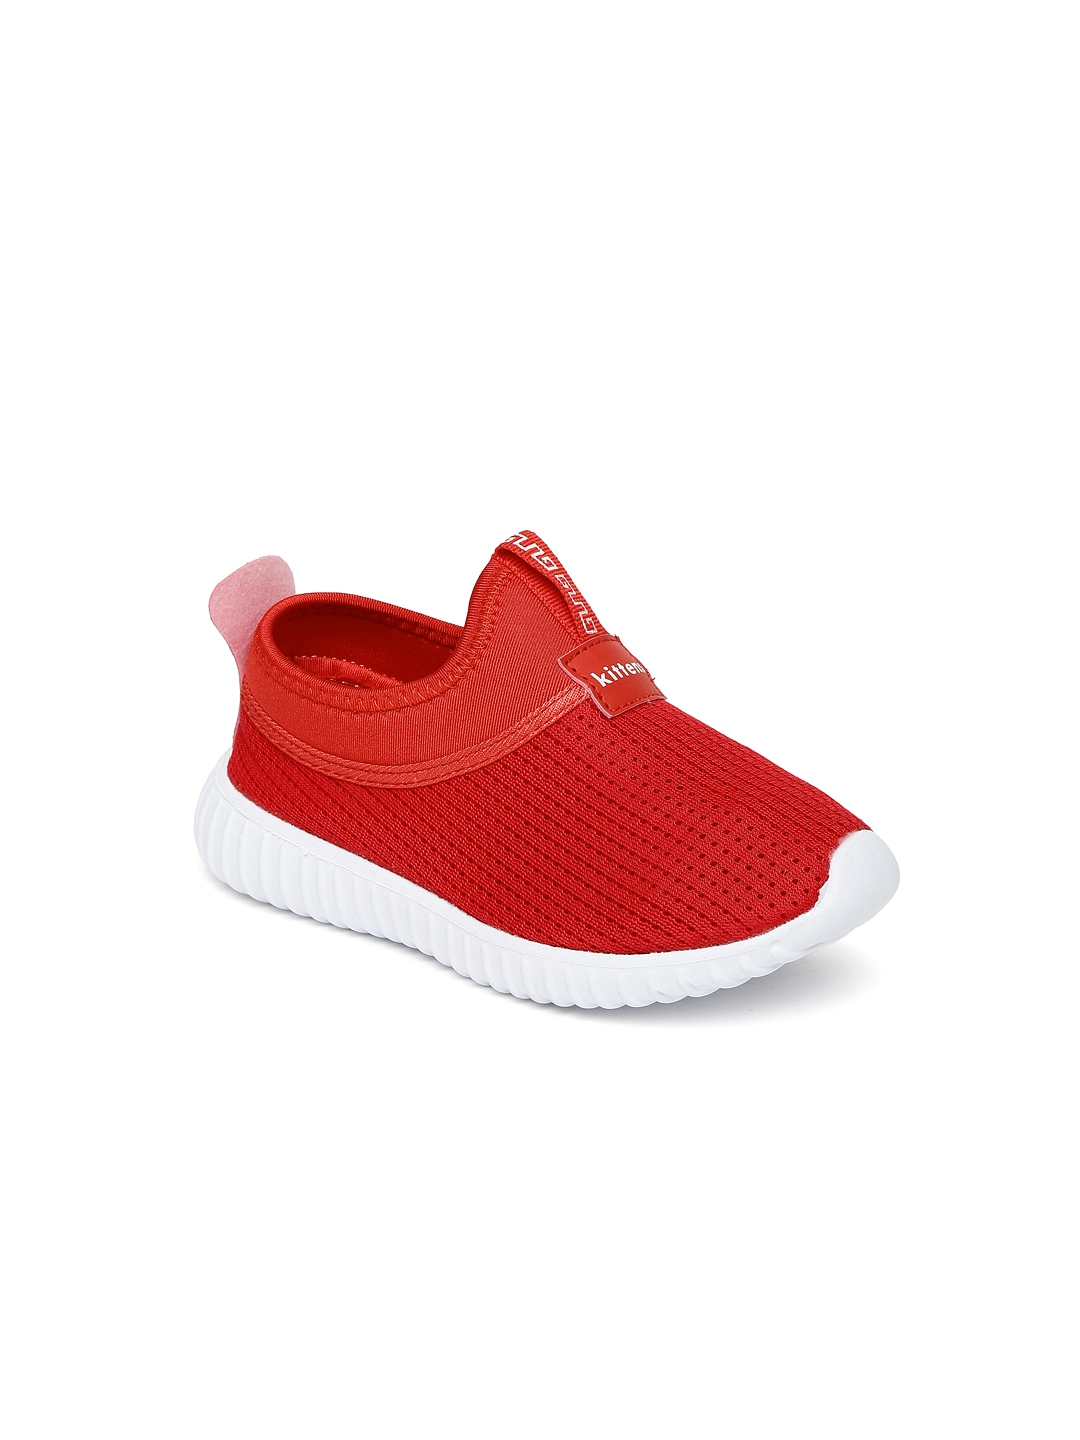 072879a7c4 Buy Kittens Boys Red Slip On Sneakers - Casual Shoes for Boys ...